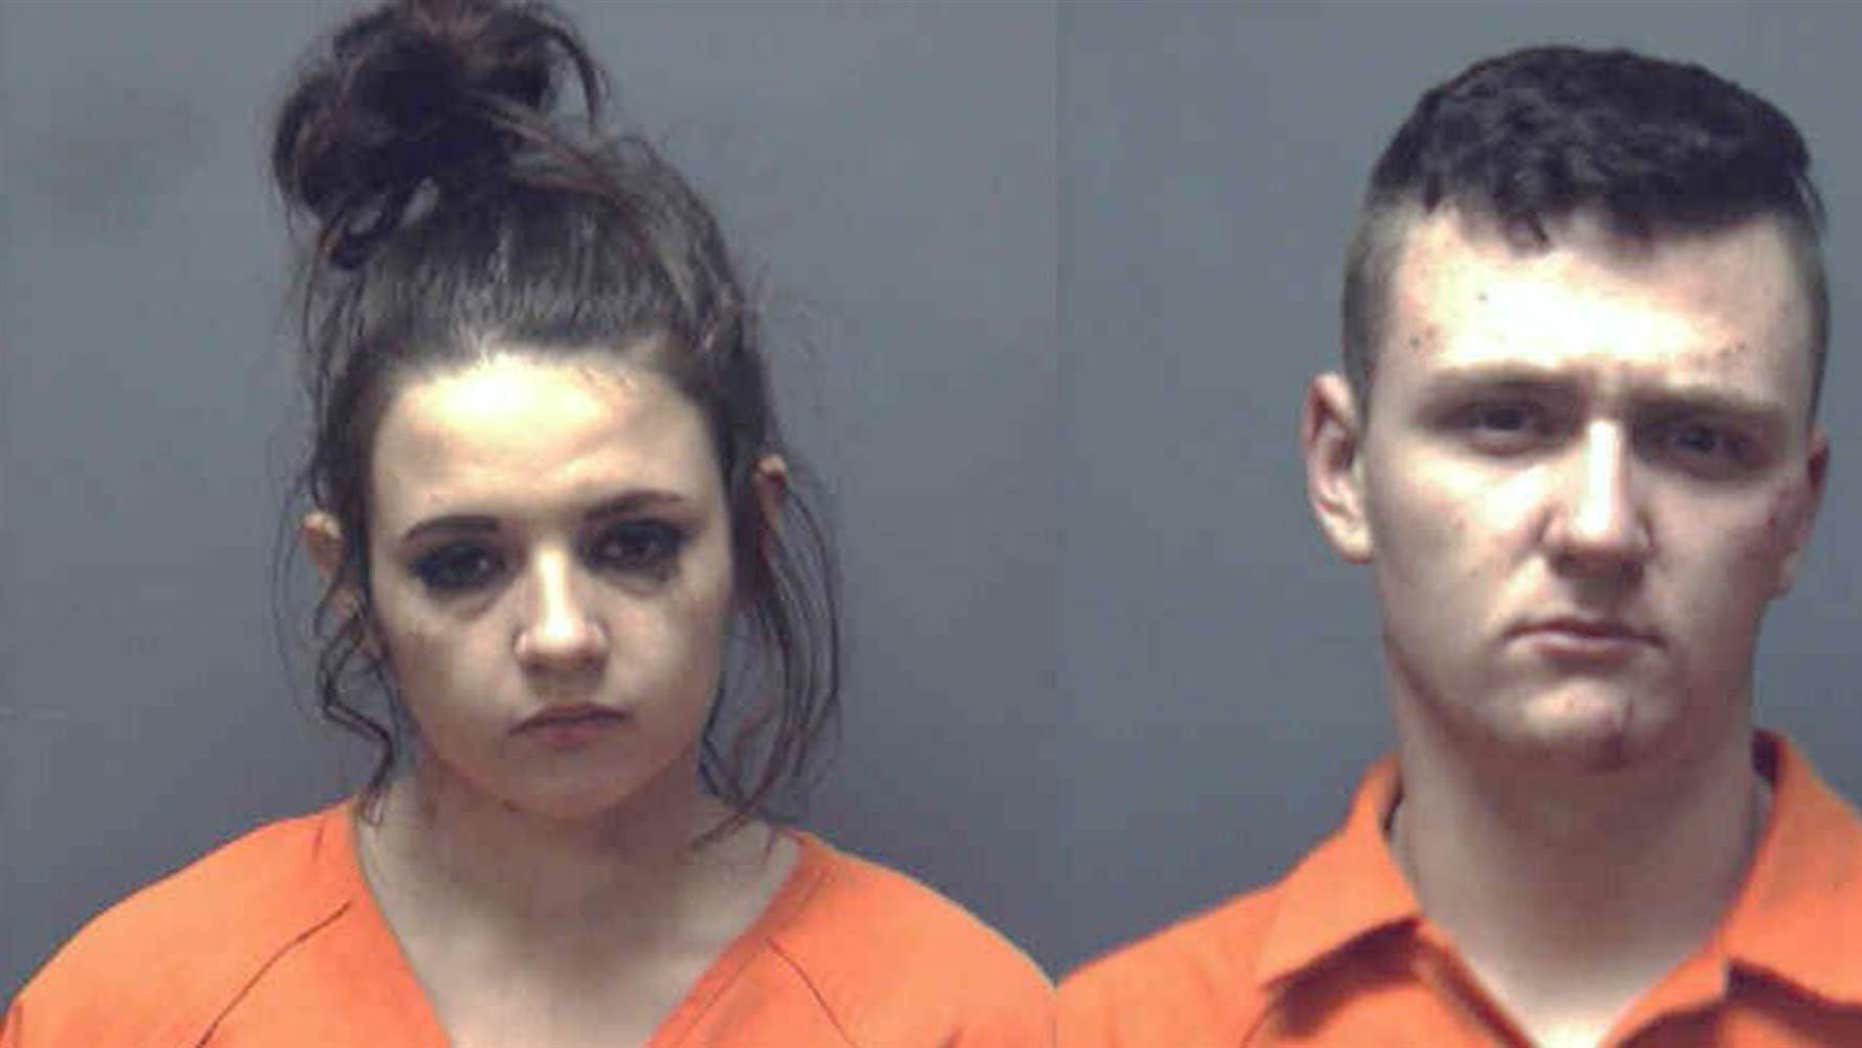 Cassidy Francis, left, and Chase McKinney led police on a car chase, officials said.